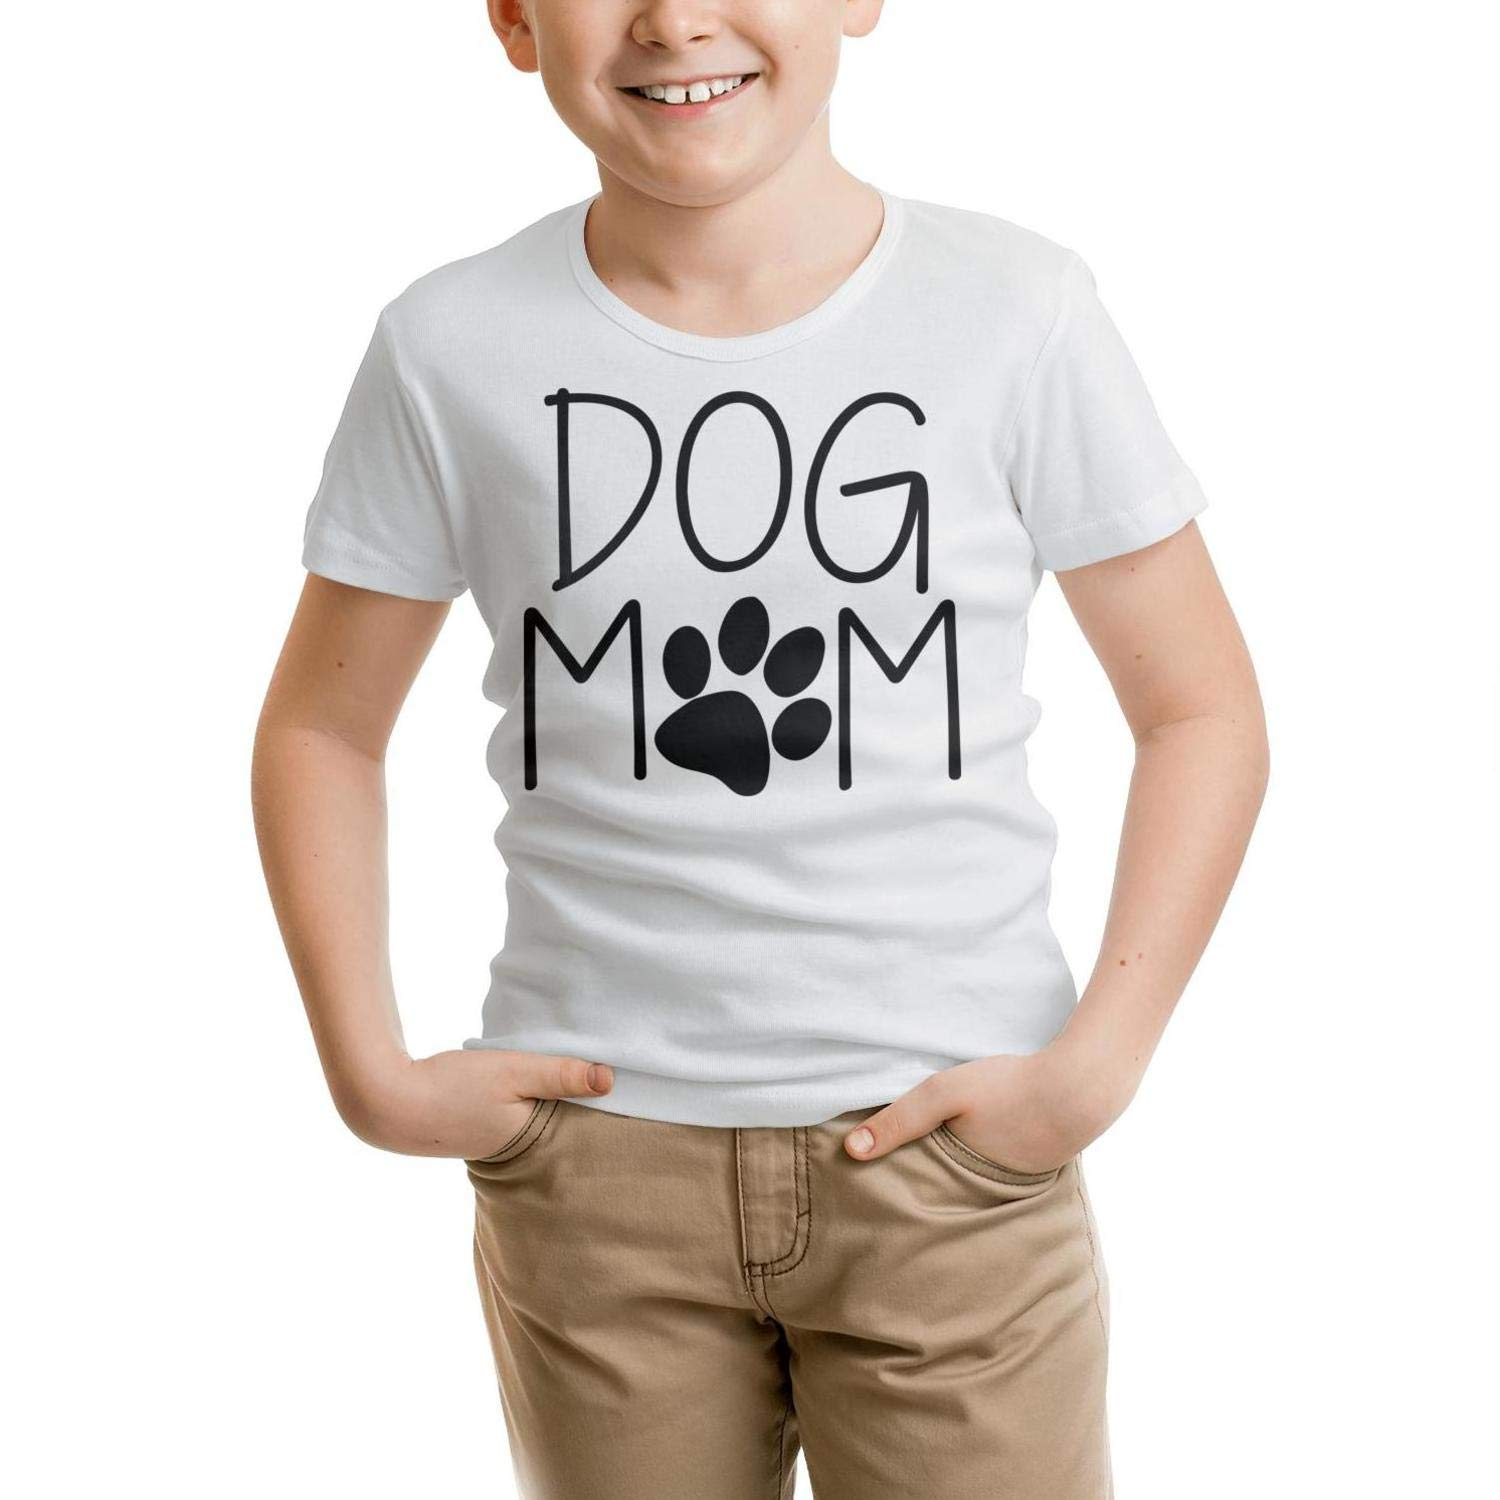 DFUFHDUF3 Kids T-Shirt Casual Round Neck Dog Mom T Shirts Cotton 100/% Linen Breathable Gift for Kids Tee